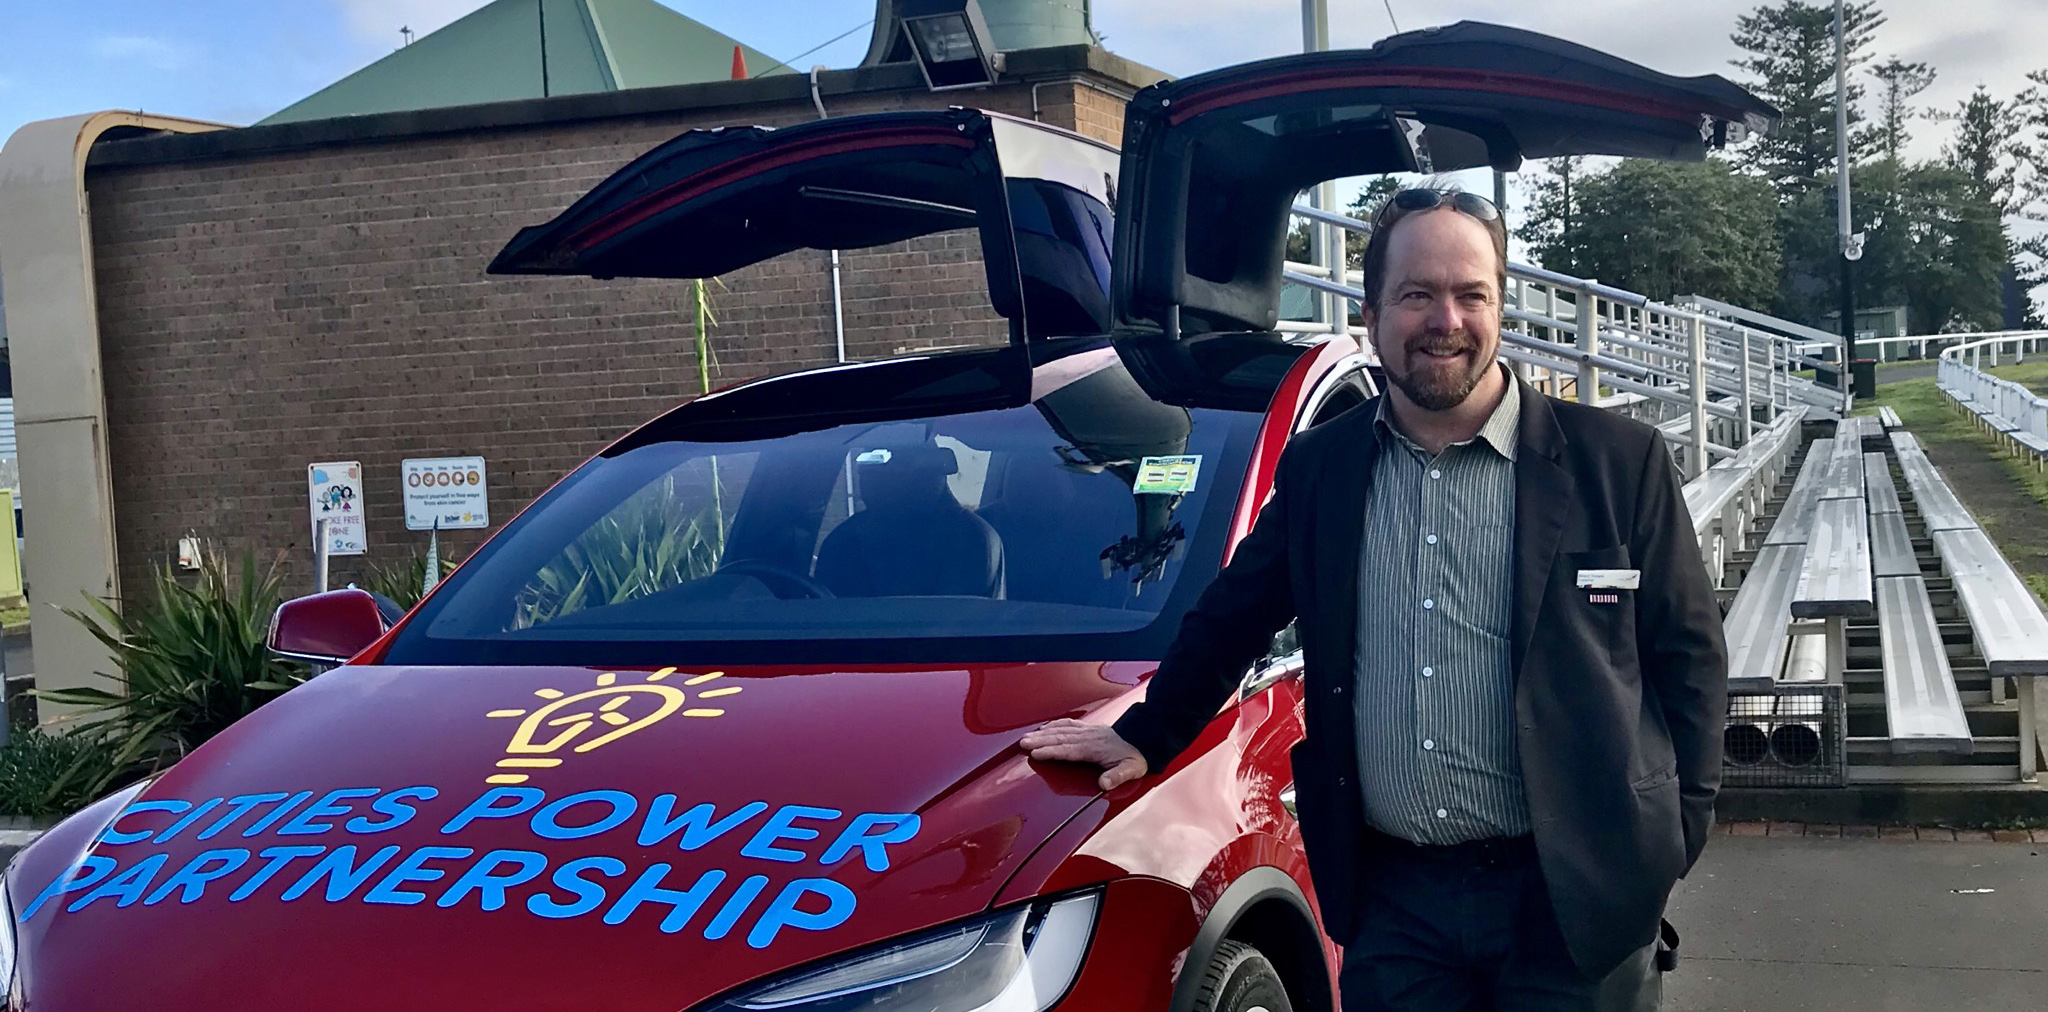 Ward 2 Councillor, Brent Hoare, inspects an electrical vehicle at the inaugural Cities Power Partnership Summit.